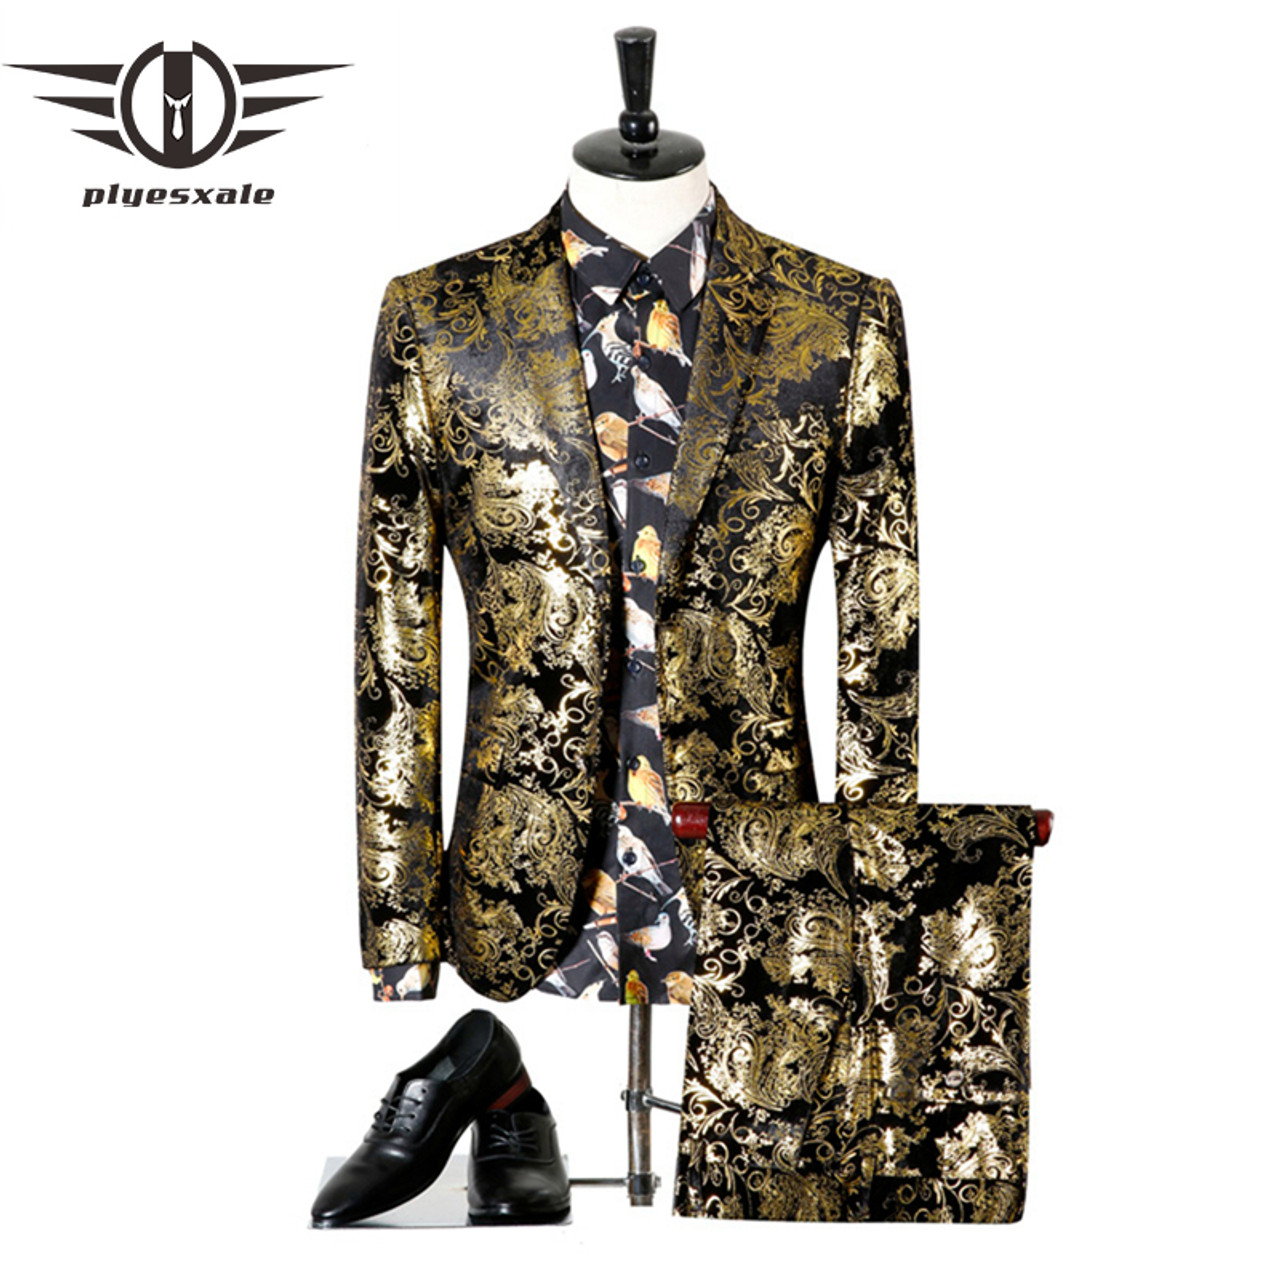 Plyesxale Men Suits For Wedding 2018 Luxury Brand Black Gold Tuxedo